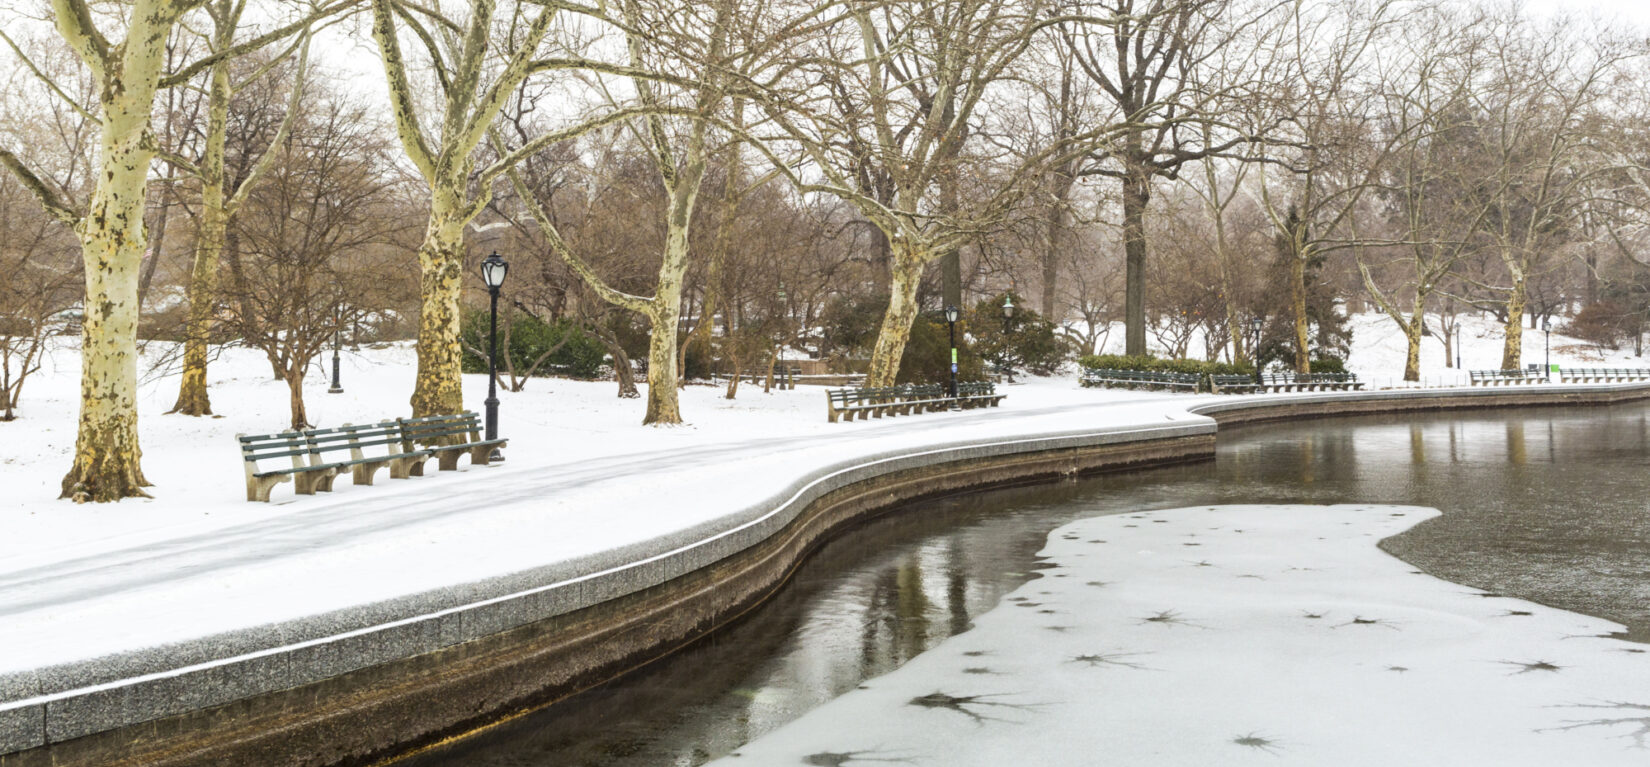 The snow-banked, undulating perimeter defines this wintry view of Conservatory Water